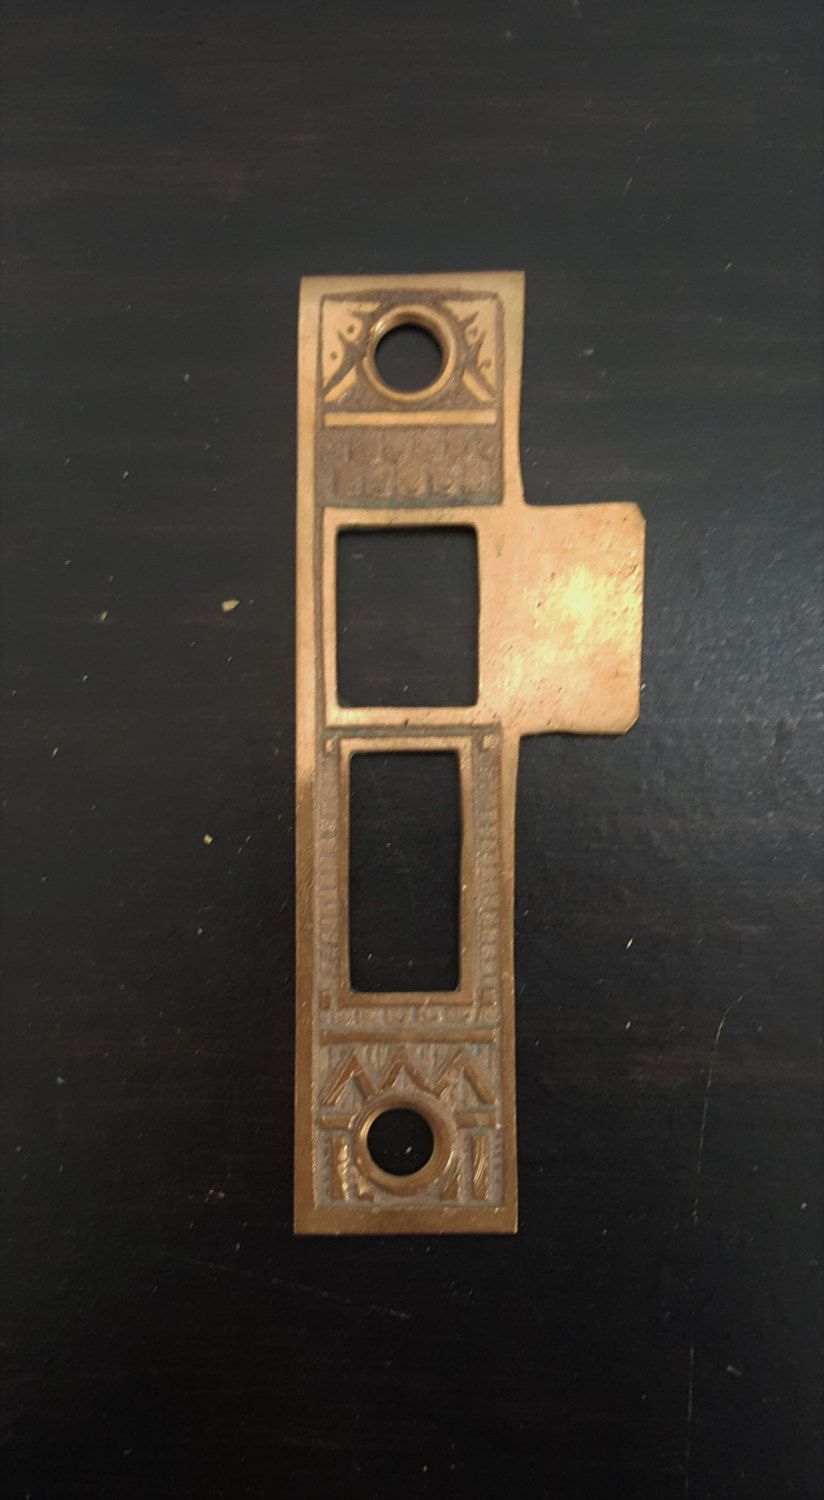 Antique Mortise Lock Strike Plate 530725 by CharlestonHardwareCo on Etsy & Antique Mortise Lock Strike Plate 530725 by CharlestonHardwareCo on ...